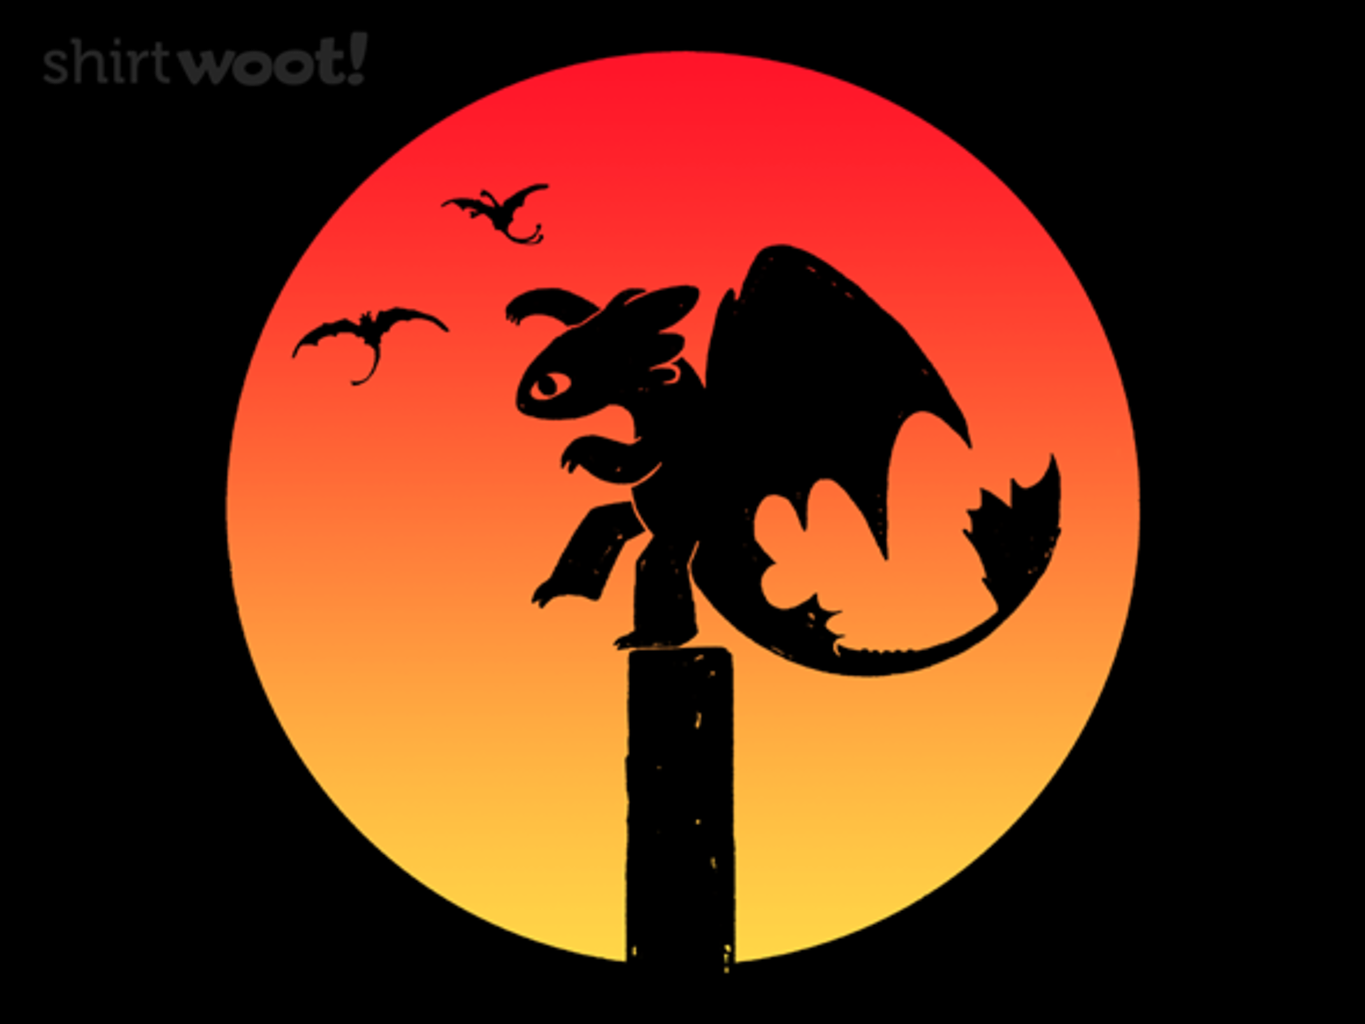 Woot!: The Trained Dragon